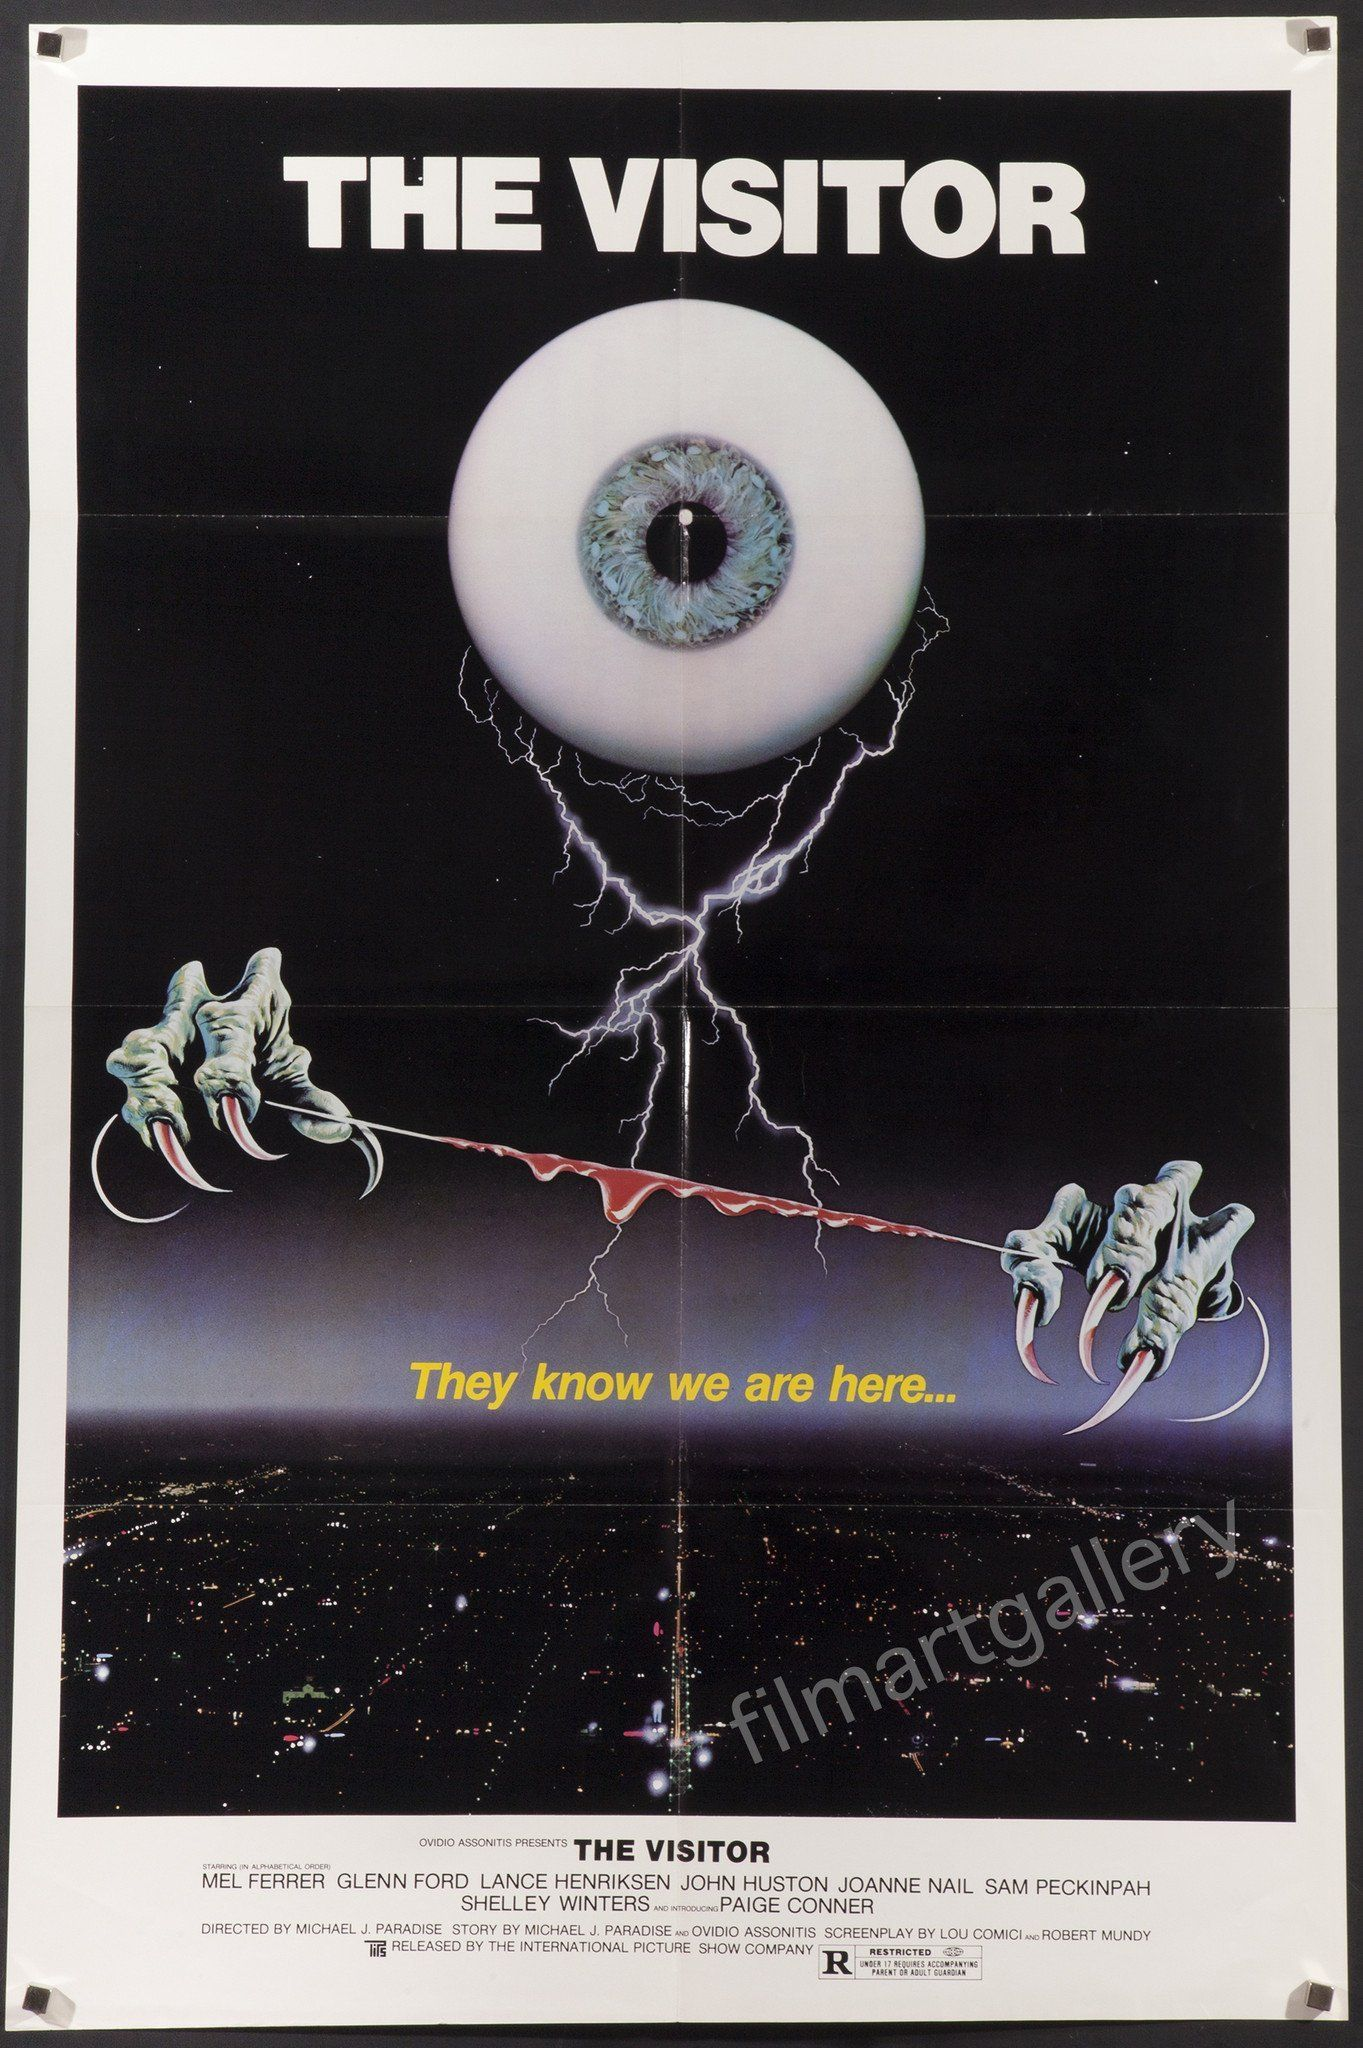 The Visitor The visitors, Movie posters vintage, Vintage